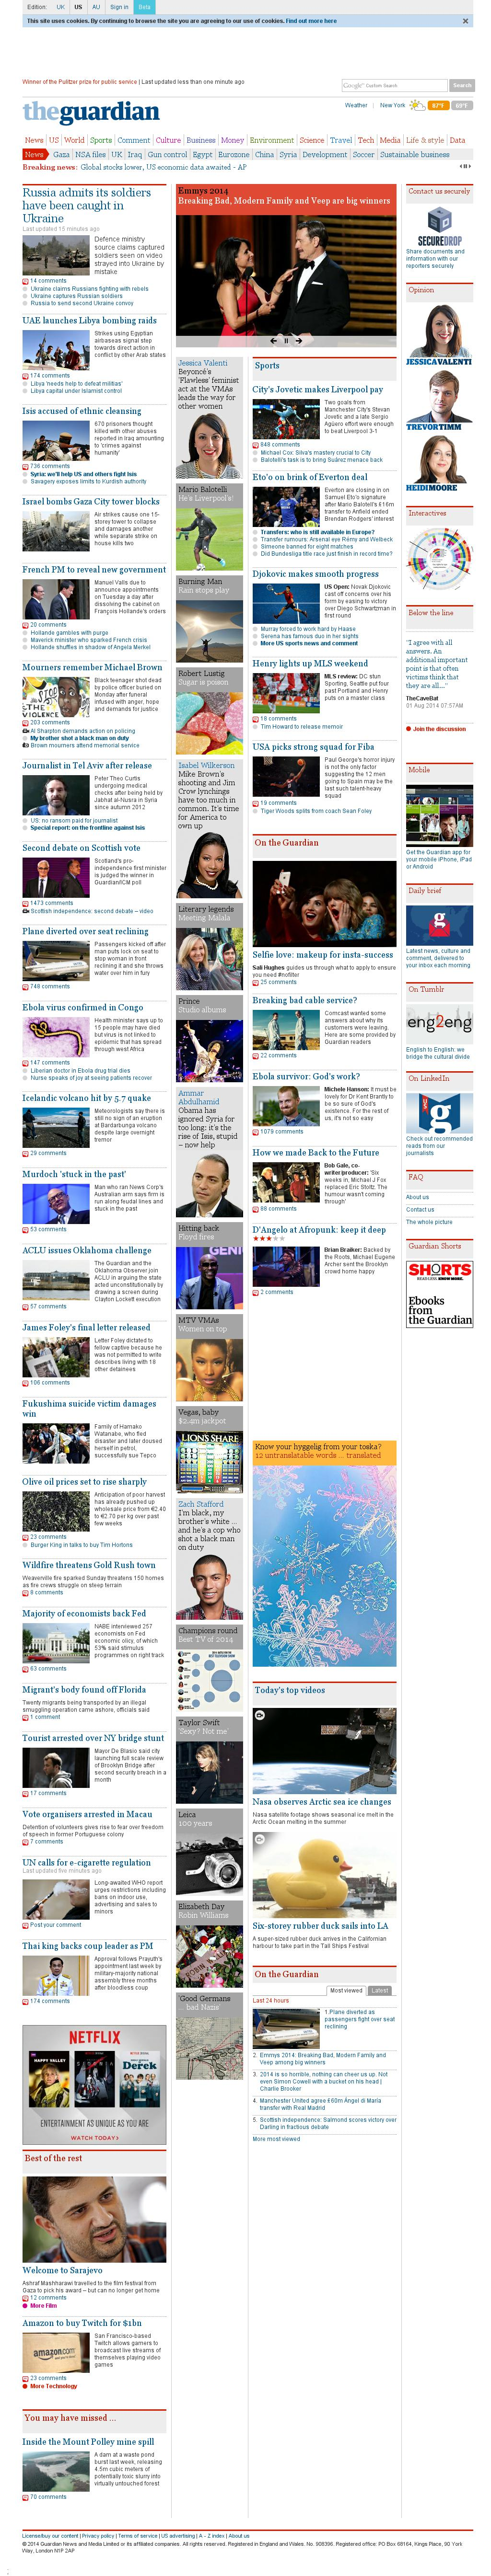 The Guardian at Tuesday Aug. 26, 2014, 10:07 a.m. UTC